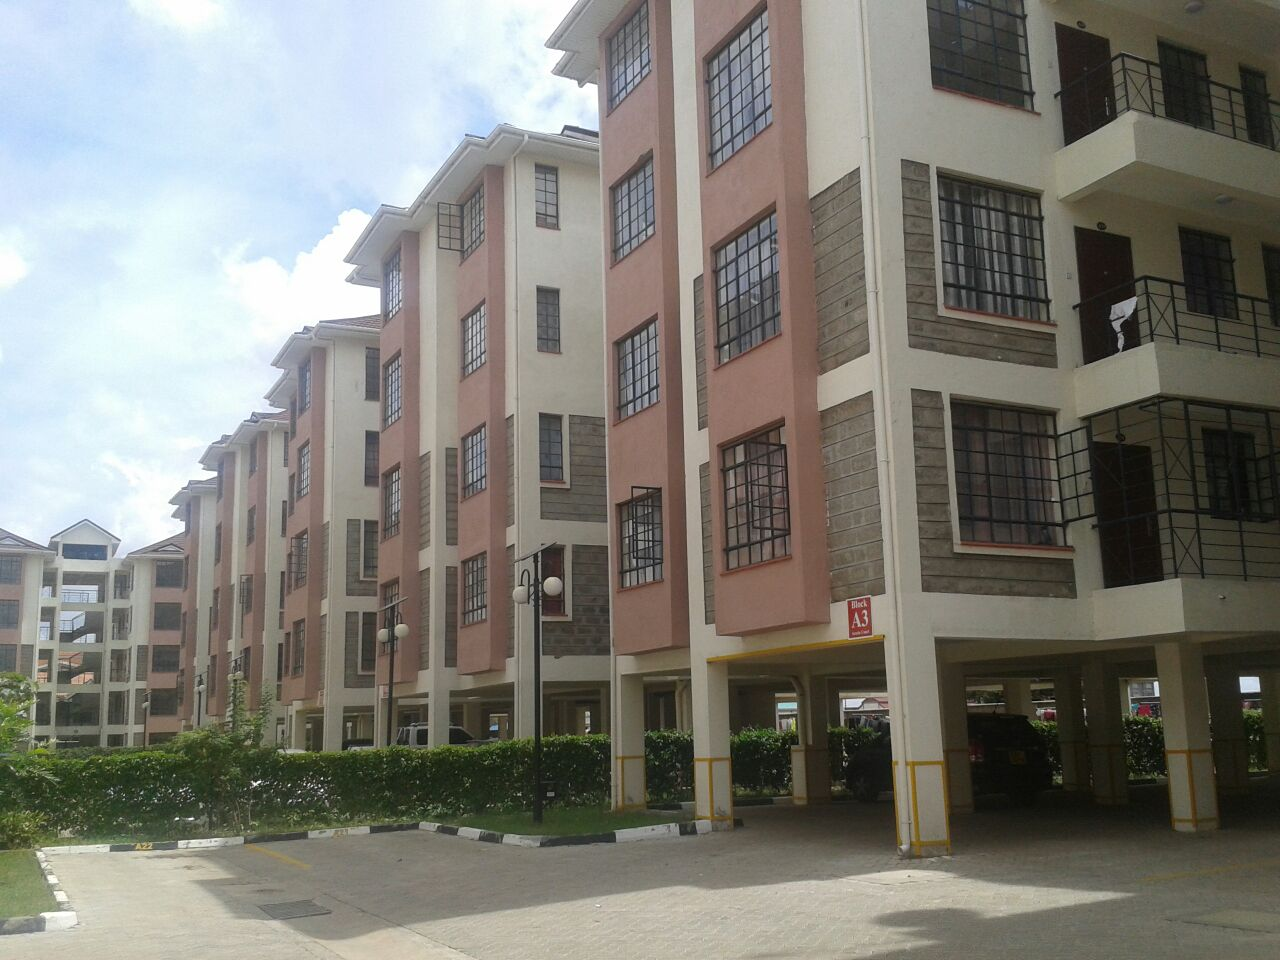 Mortgages in Kenya too expensive, says real estate firm